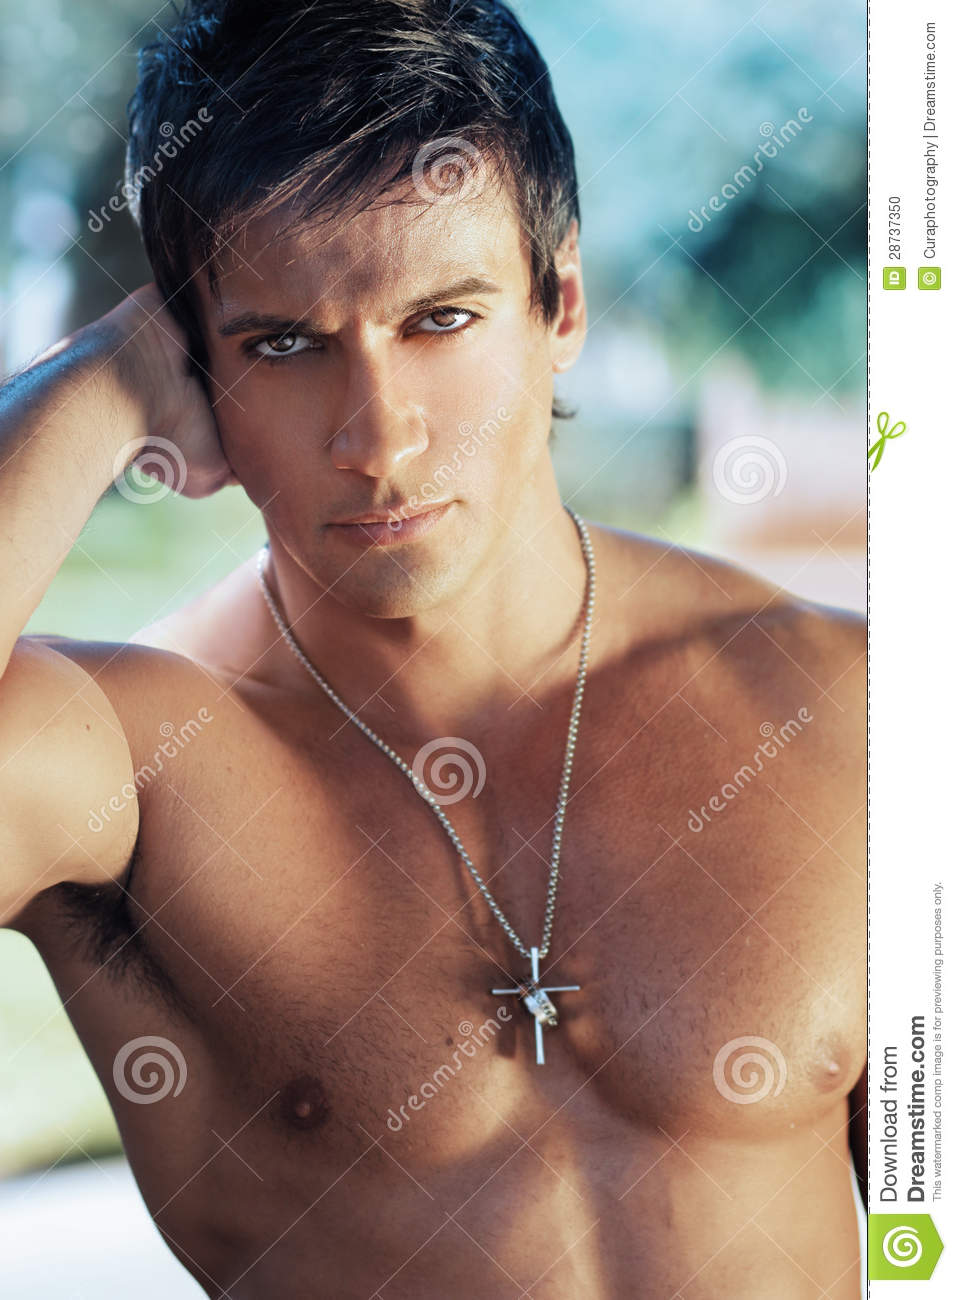 Close-up portrait of handsome shirtless man outdoors.